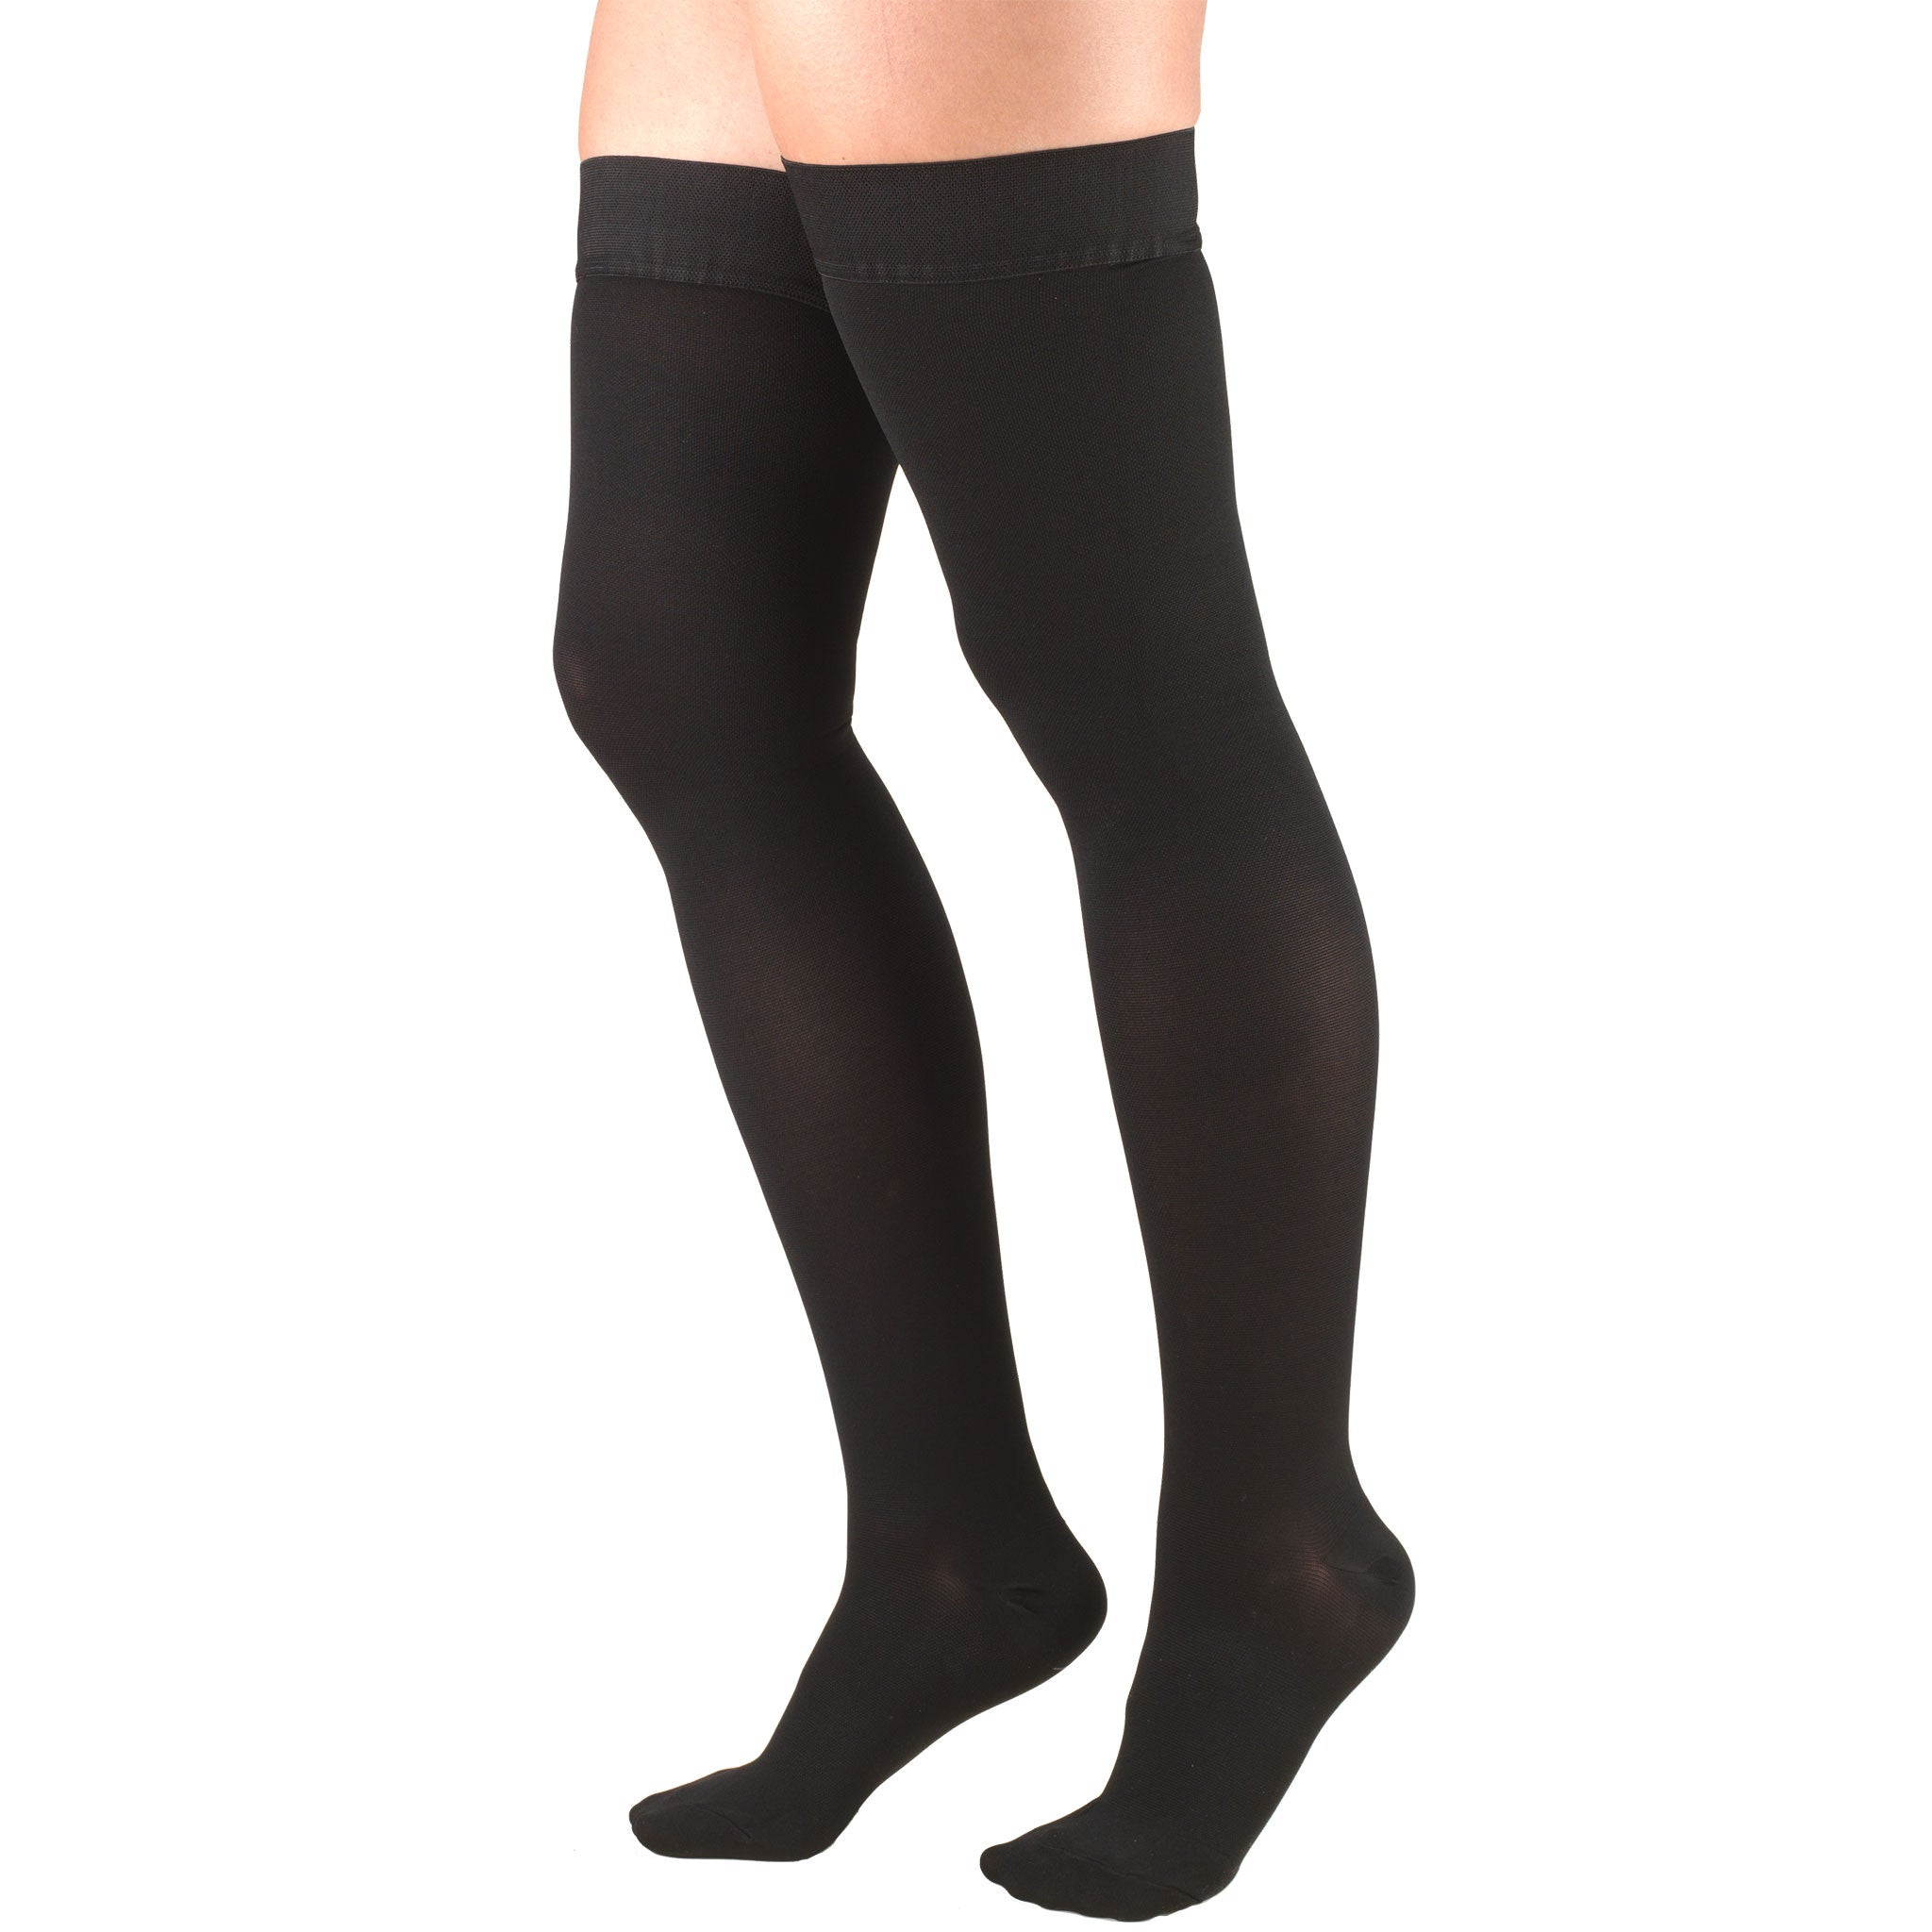 8848 THIGH HIGH CLOSED TOE BLACK STOCKINGS